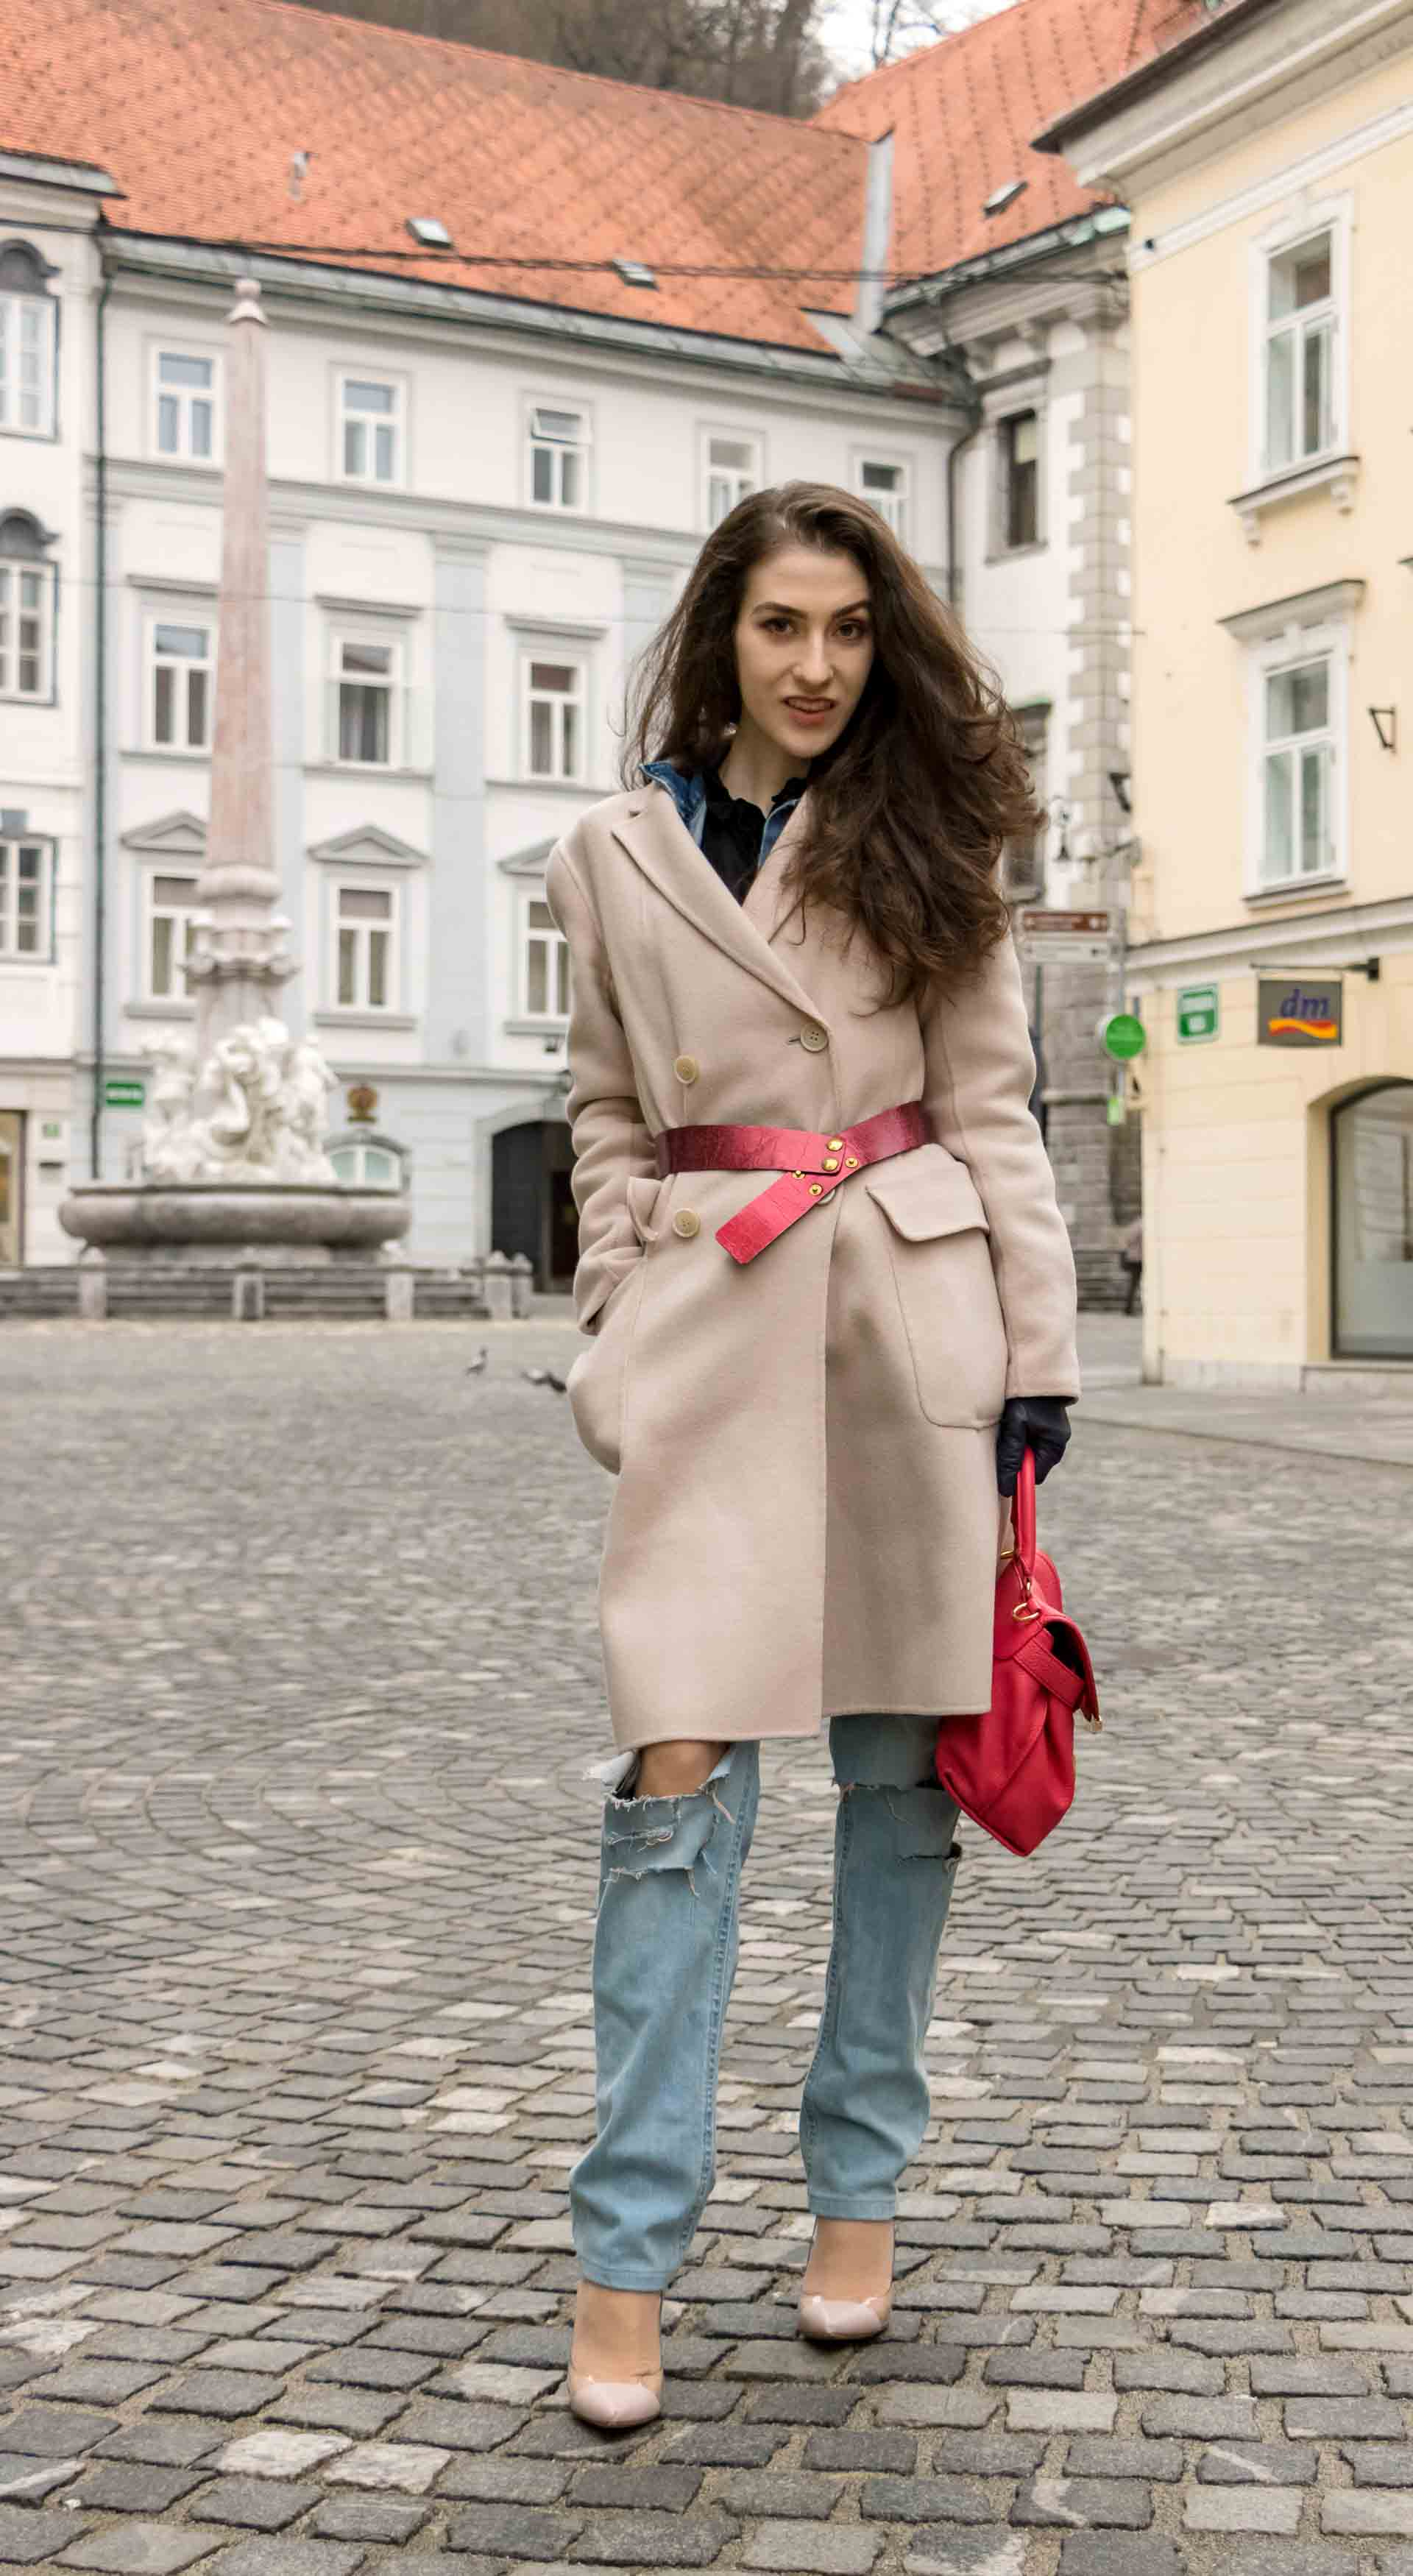 Fashion Blogger Veronika Lipar of Brunette from Wall Street dressed in ripped blue Levi's jeans, off-white double breasted Weekend Maxmara coat, red dangling belt, blush Gianvito Rossi plexi pumps, See by Chloe pink top handle bag, blue leather gloves standing on the street of Ljubljana